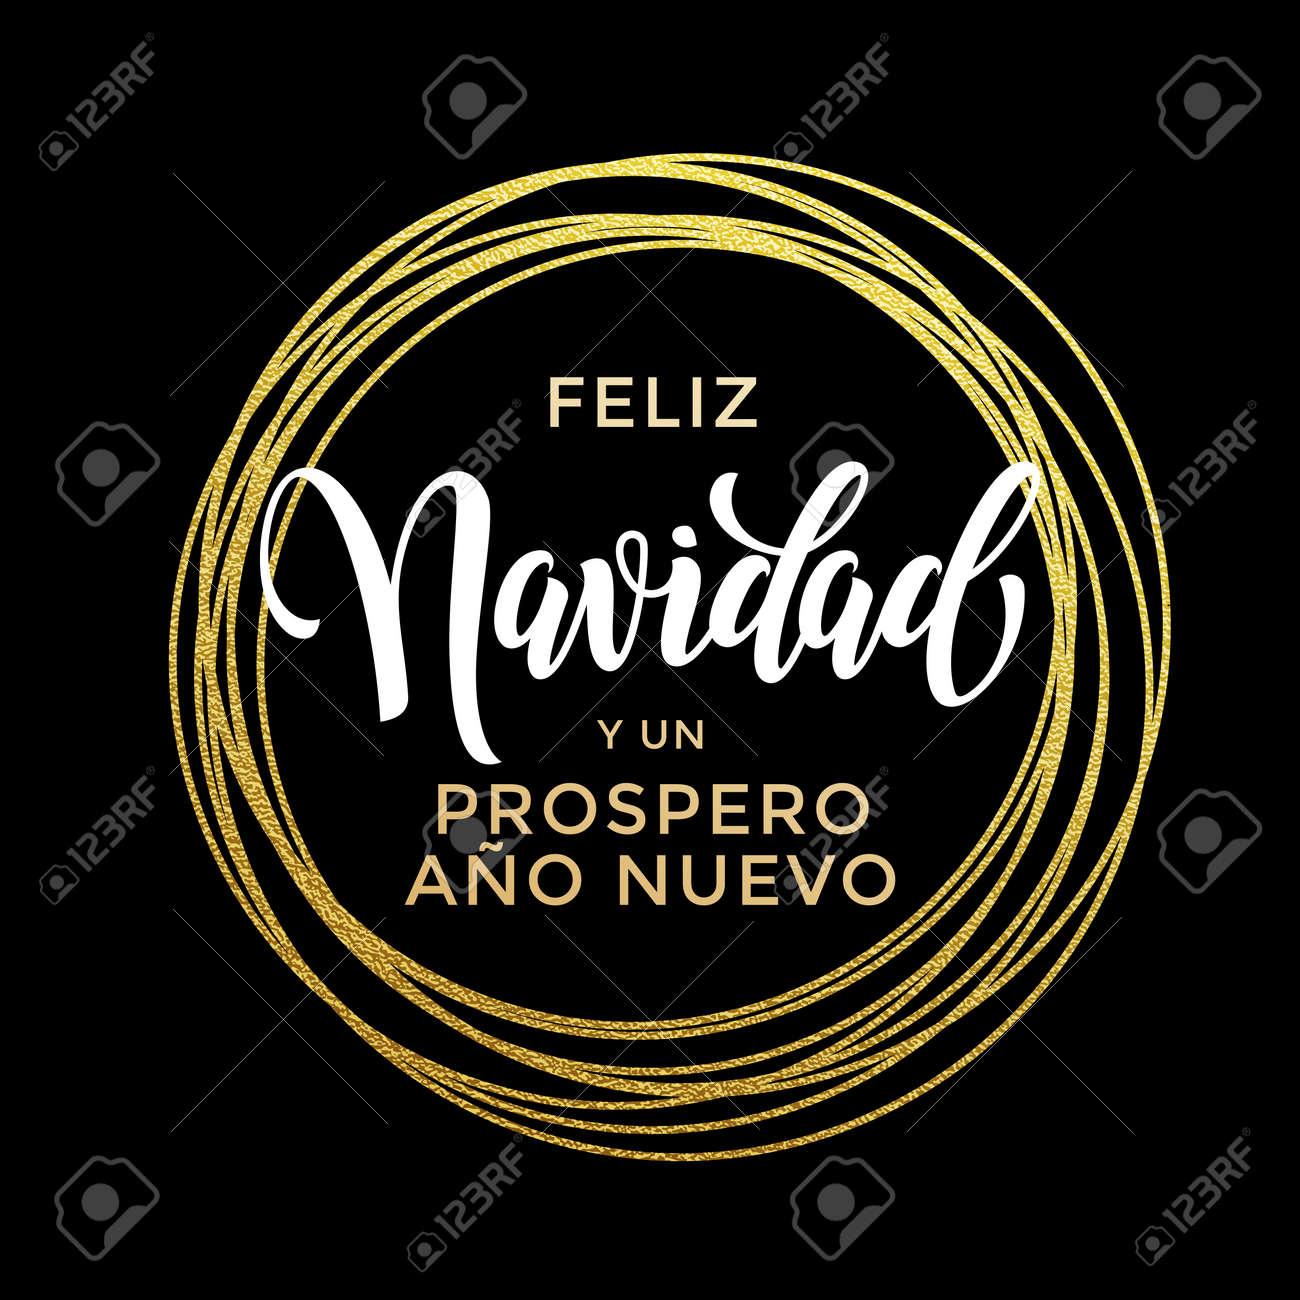 prospero ano nuevo spanish happy new year feliz navidad merry christmas luxury golden greeting card